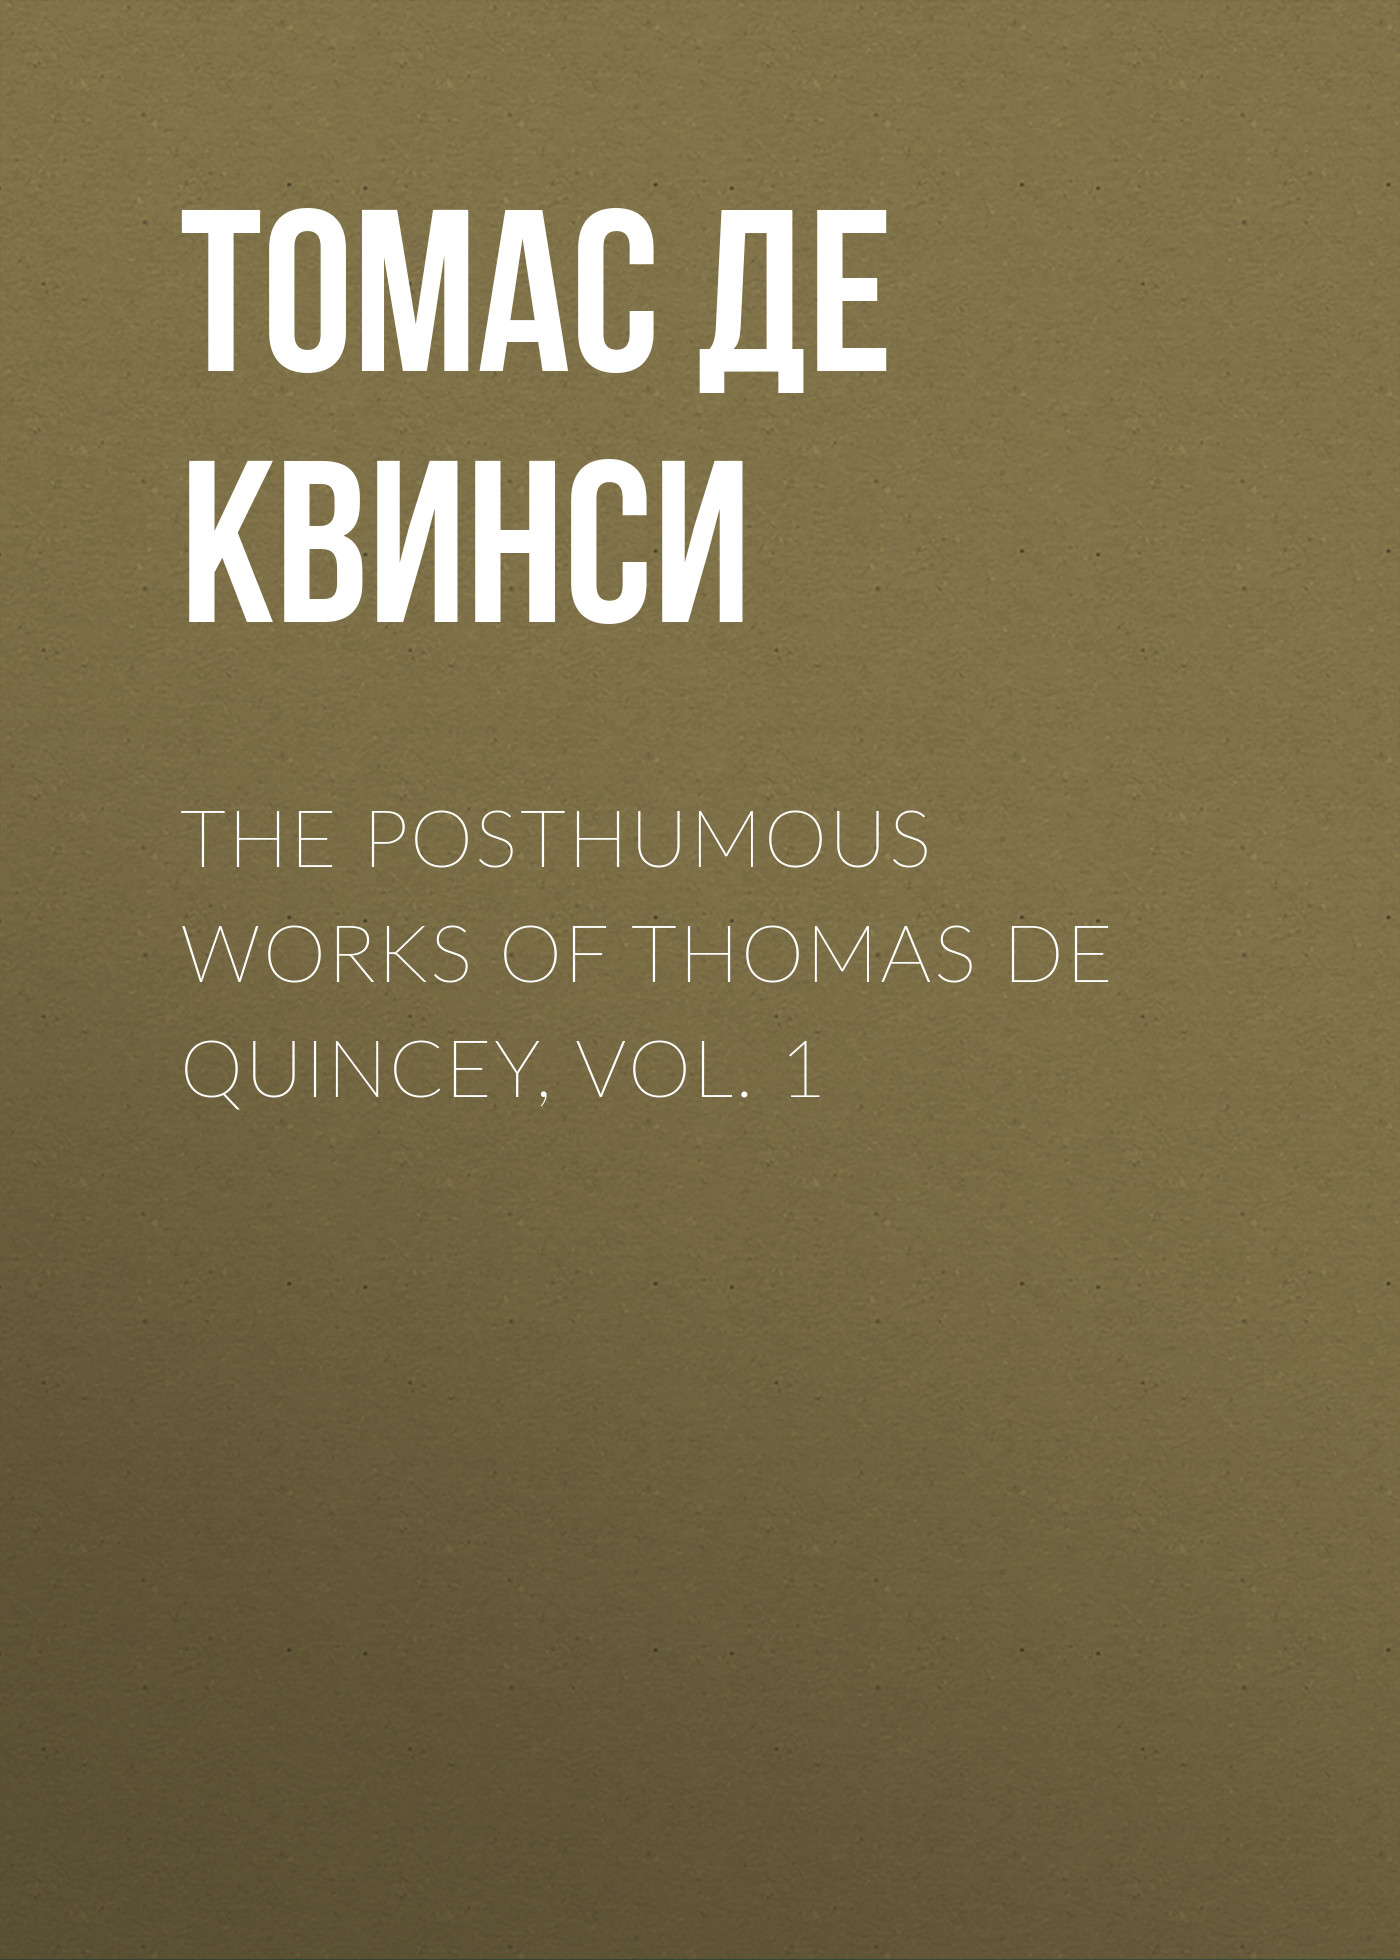 Томас де Квинси The Posthumous Works of Thomas De Quincey, Vol. 1 thomas frognall dibdin bibliotheca spenceriana vol 1